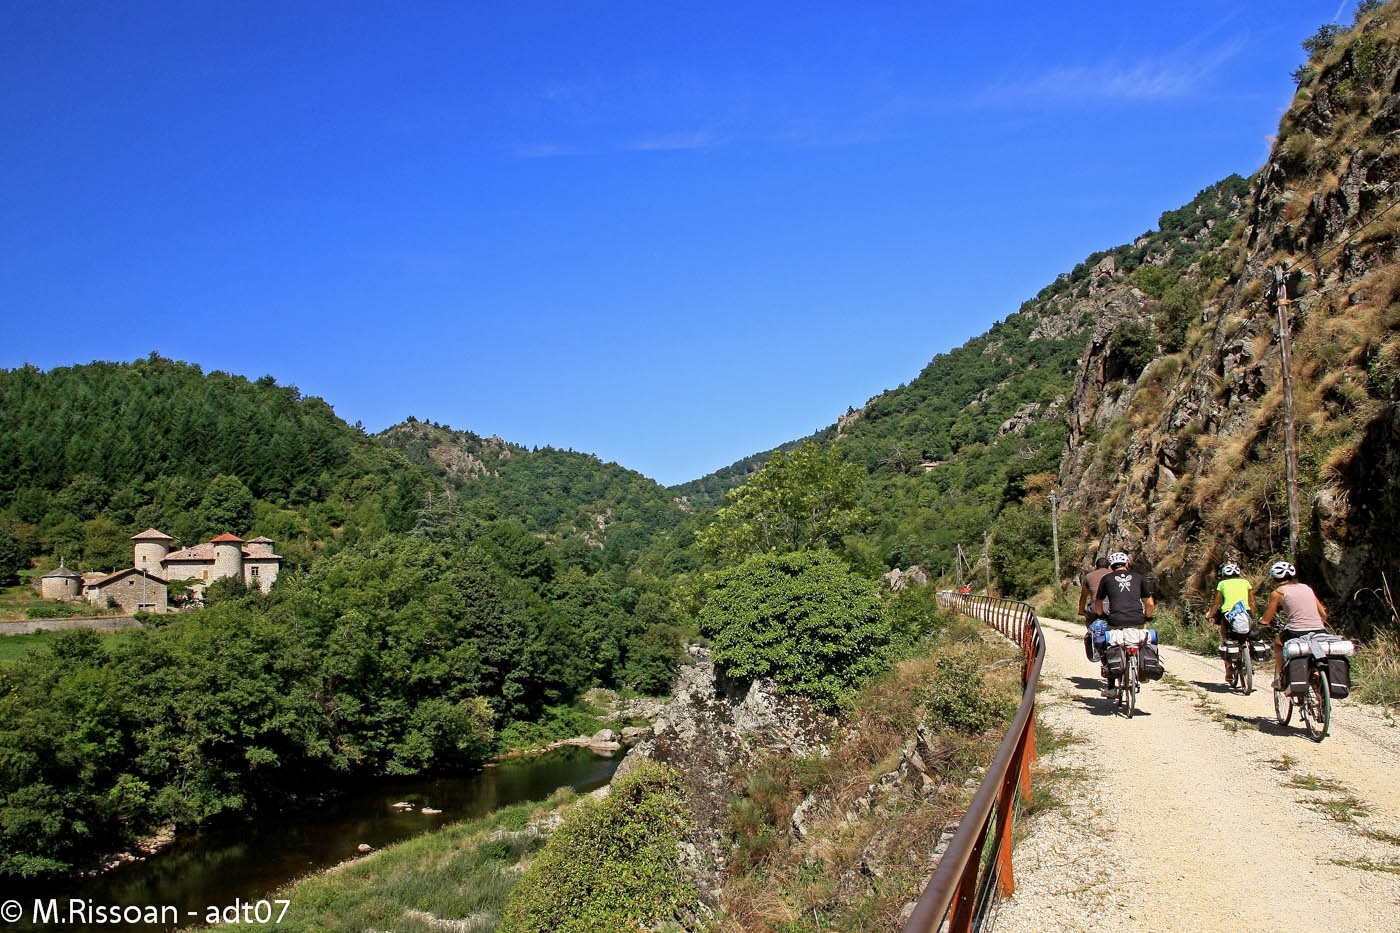 Take a bike ride along the foot and cycle paths : The Dolce Via from La Voulte sur Rhône to Saint-Agrève